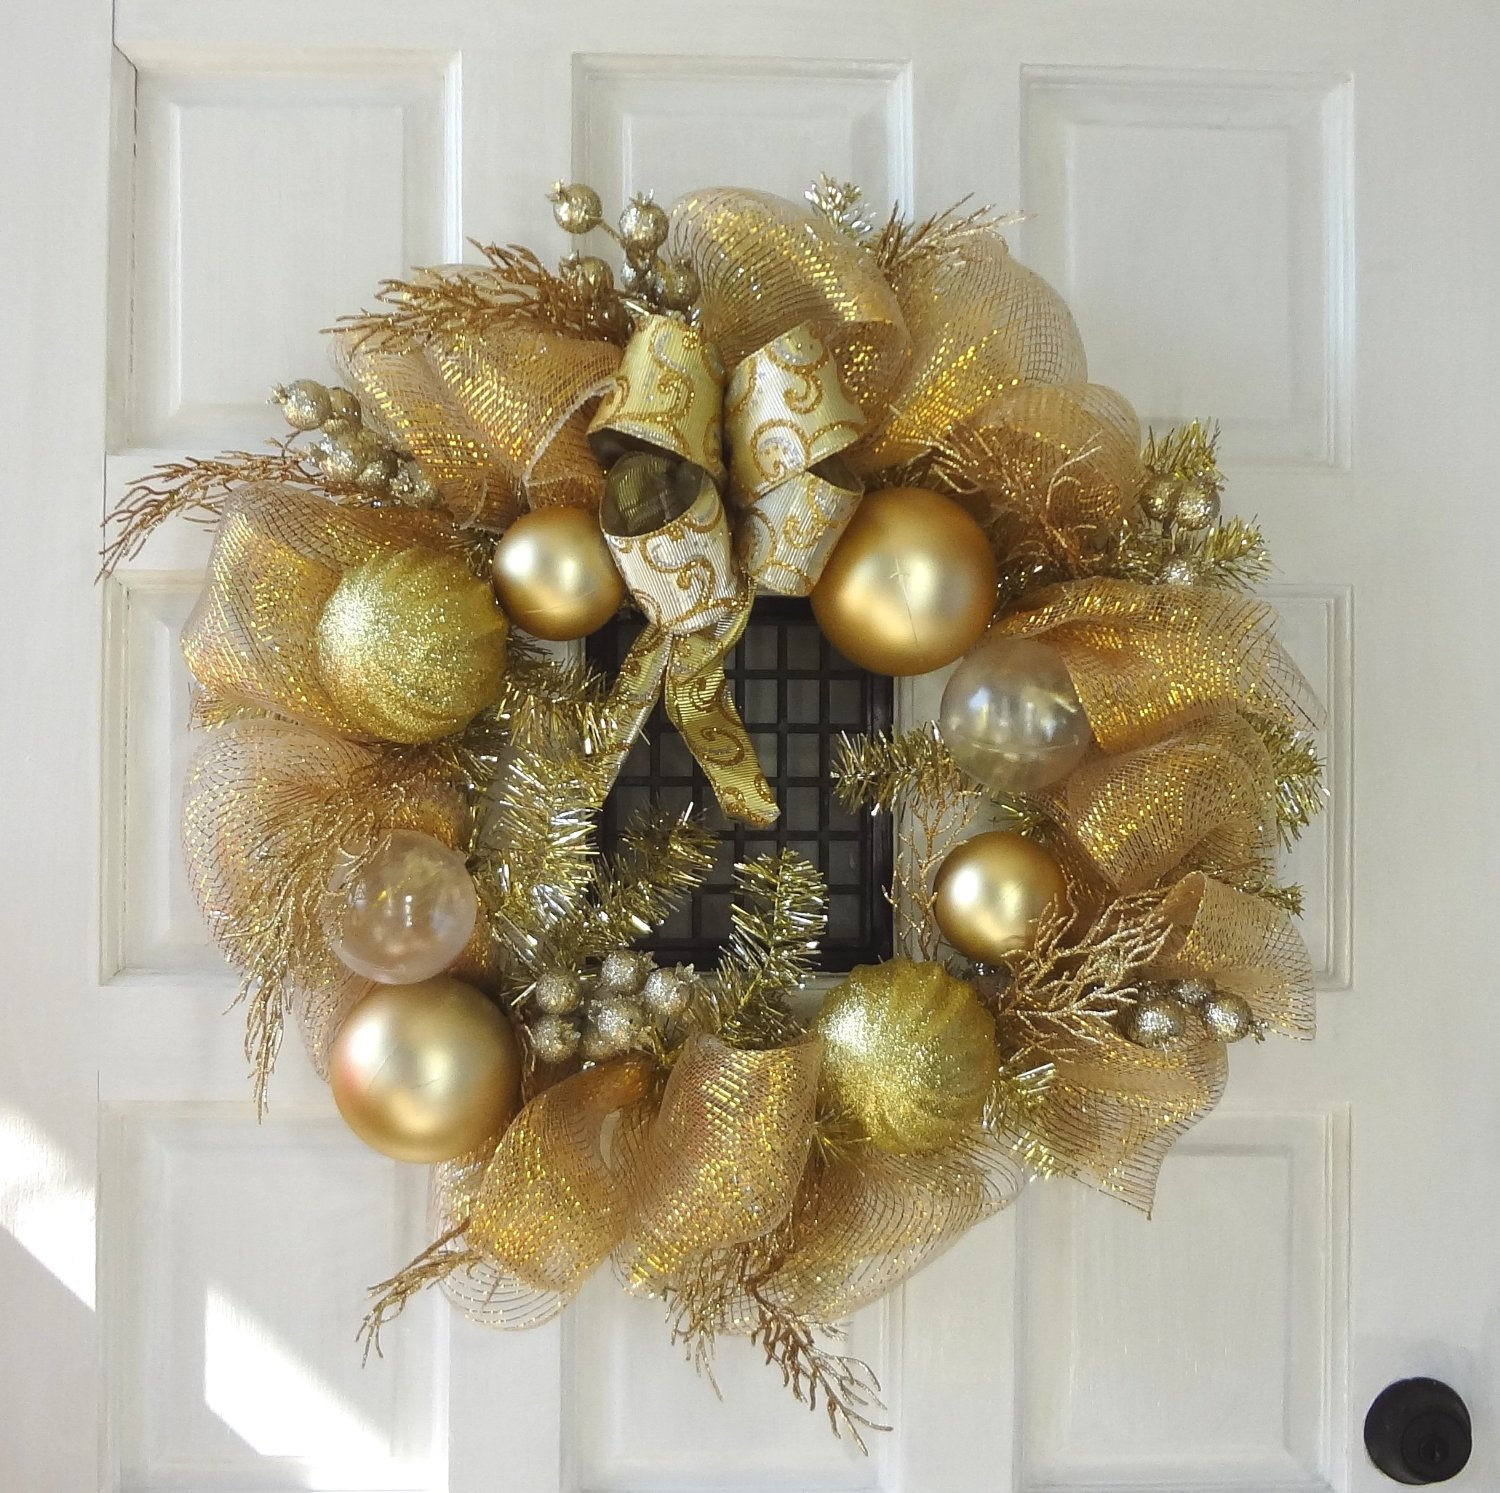 the brilliant gold color and just the right amount of sparkle make this wreath a beautiful compliment to your entryway